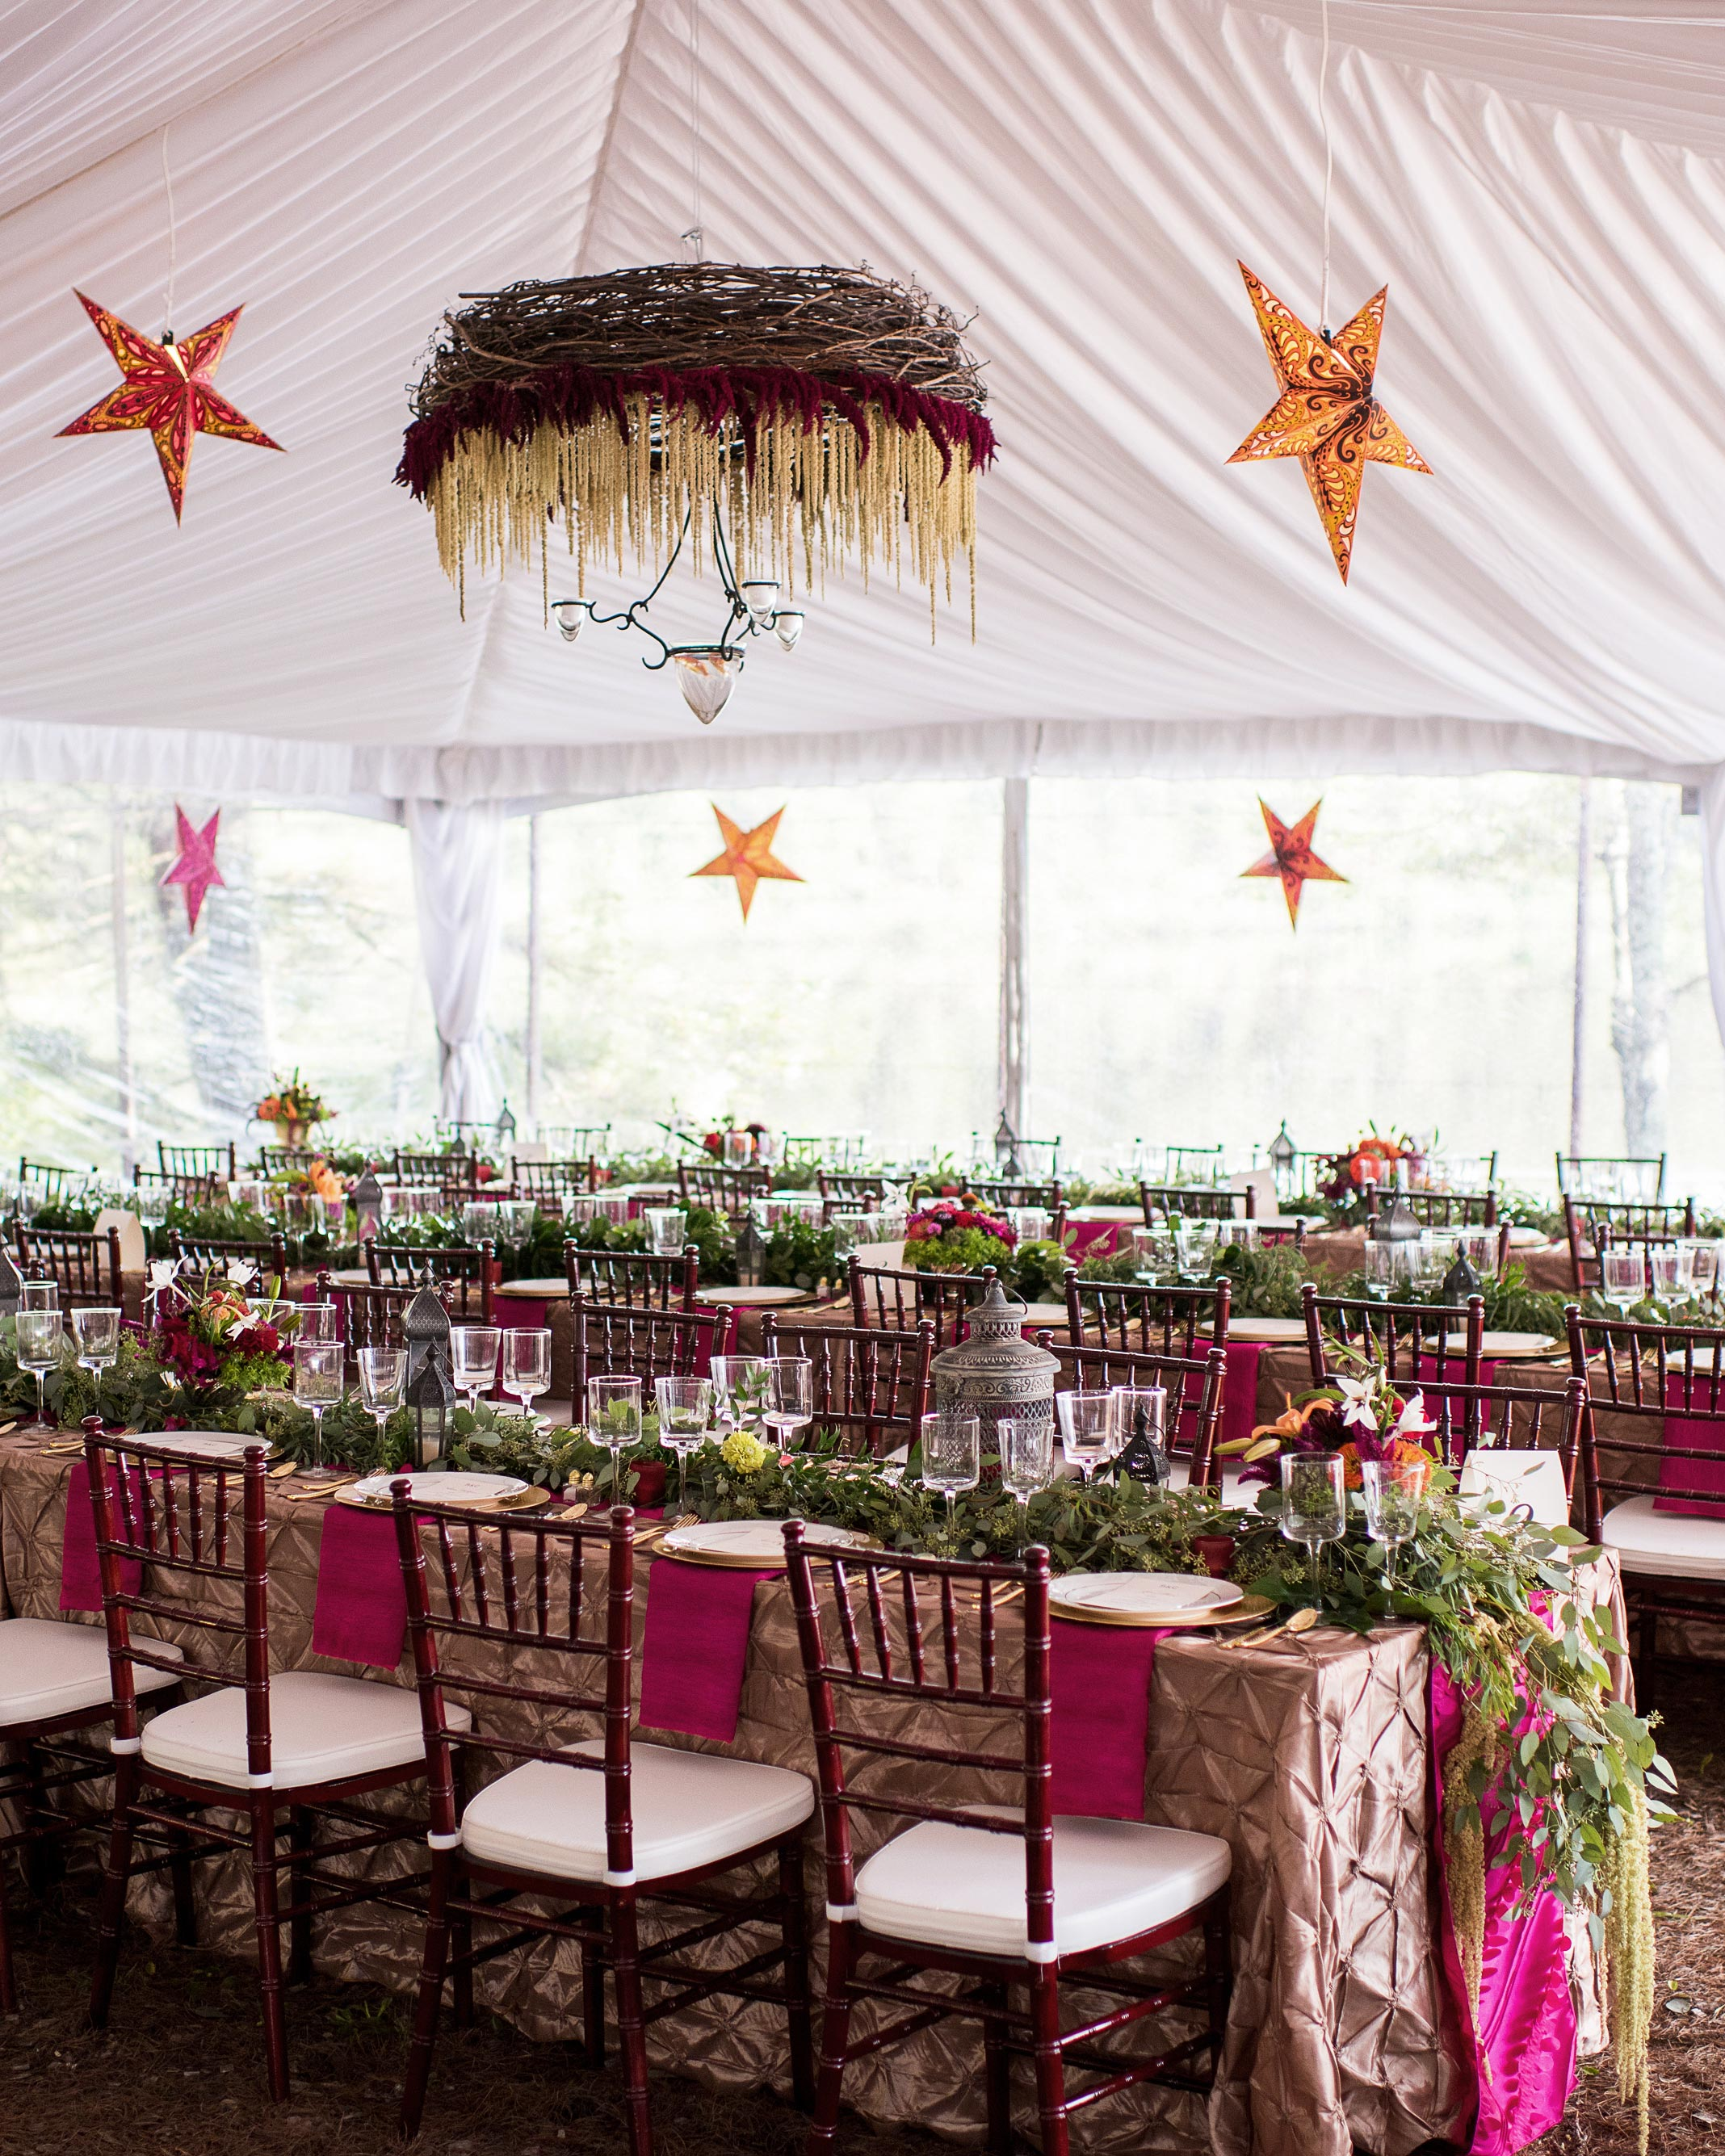 christopher-stephen-wedding-tent-0473-s112787-0416.jpg